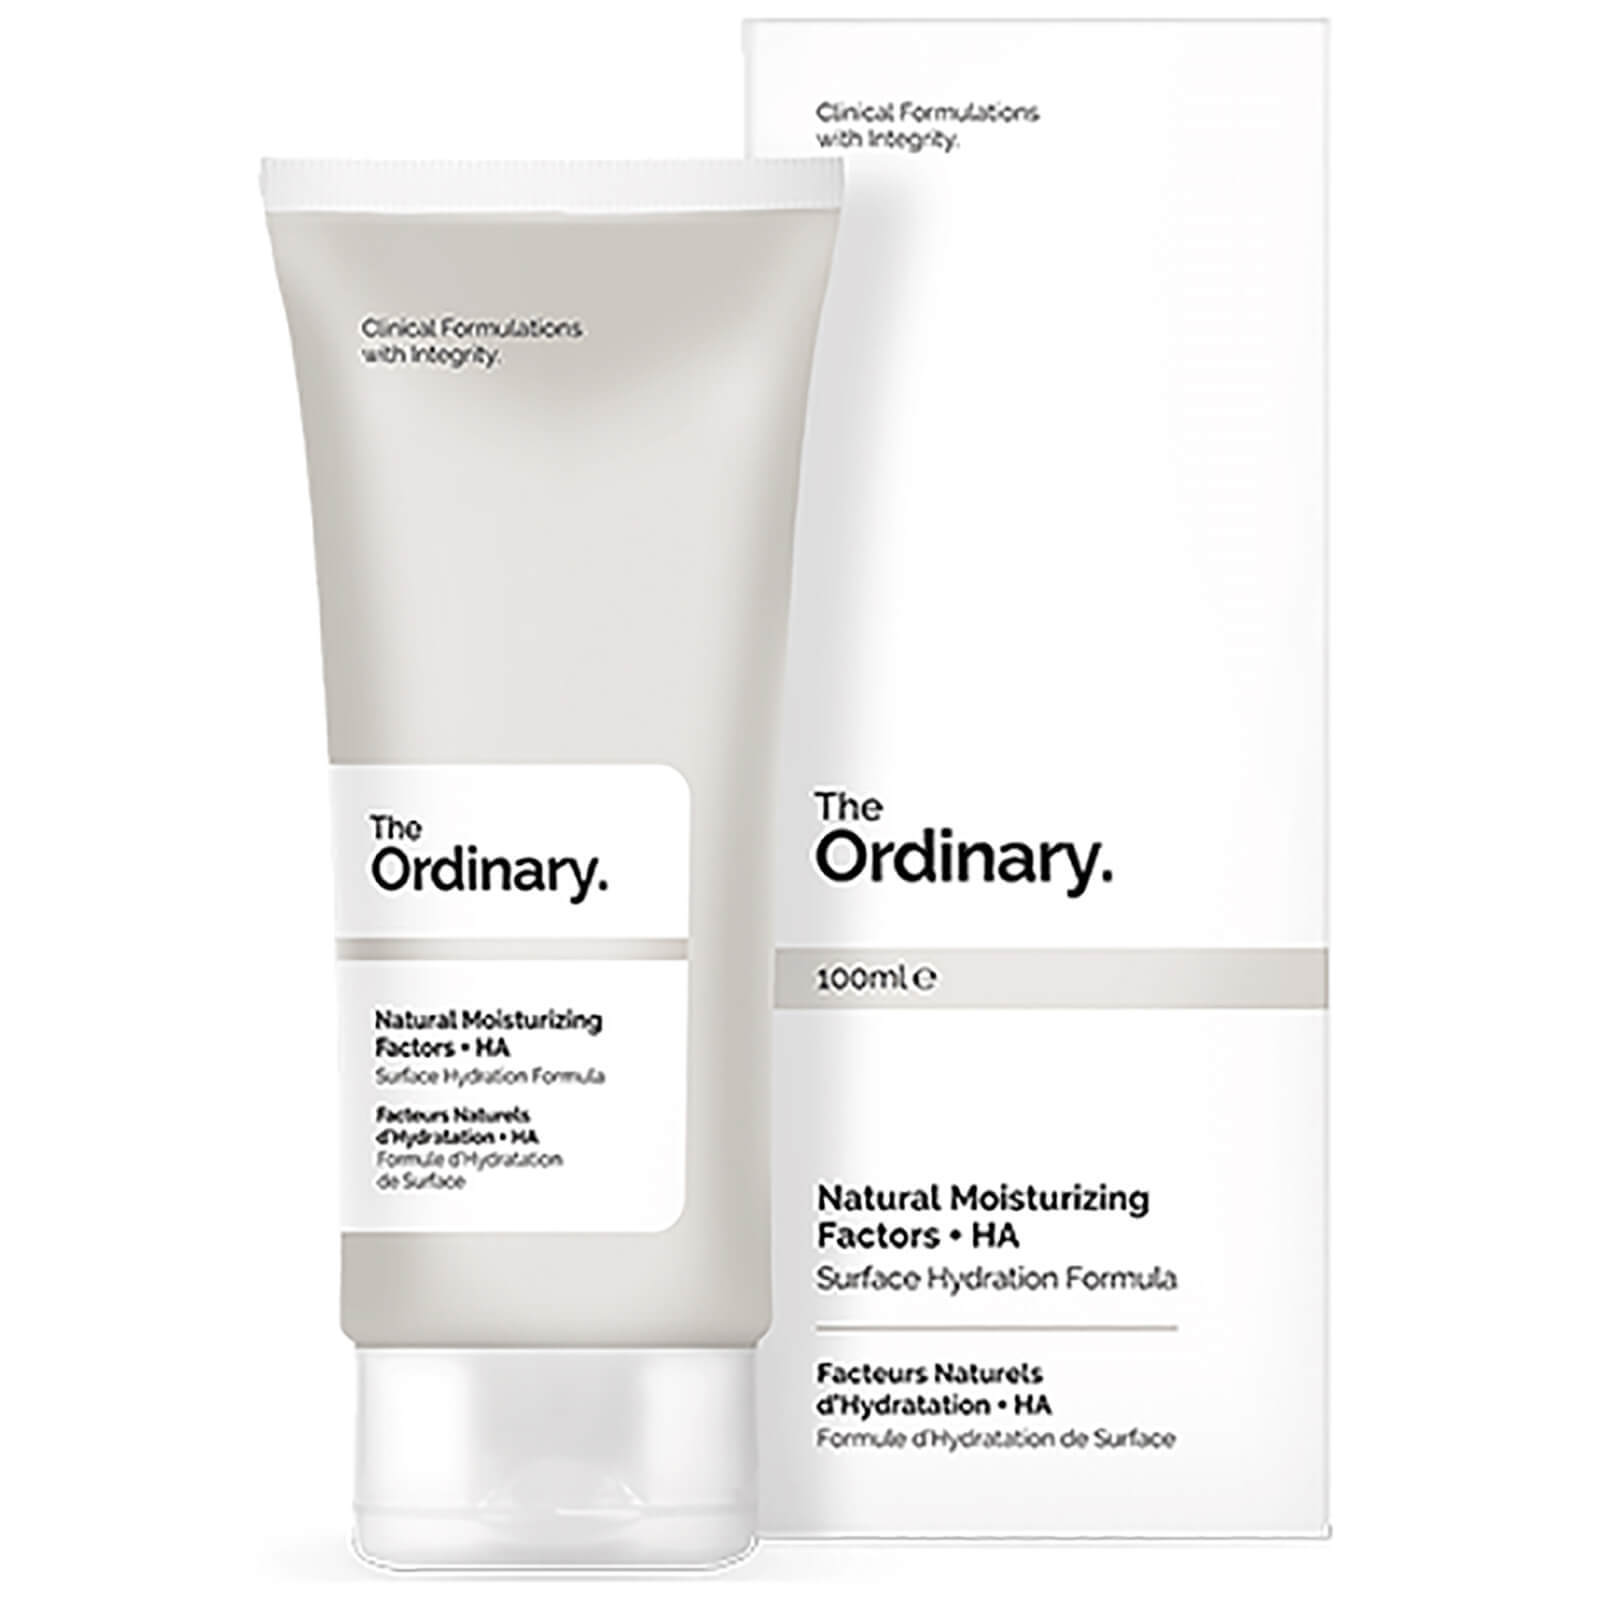 Крем The ordinary Natural Moisturizing Factors + HA увлажняющий 100 ml